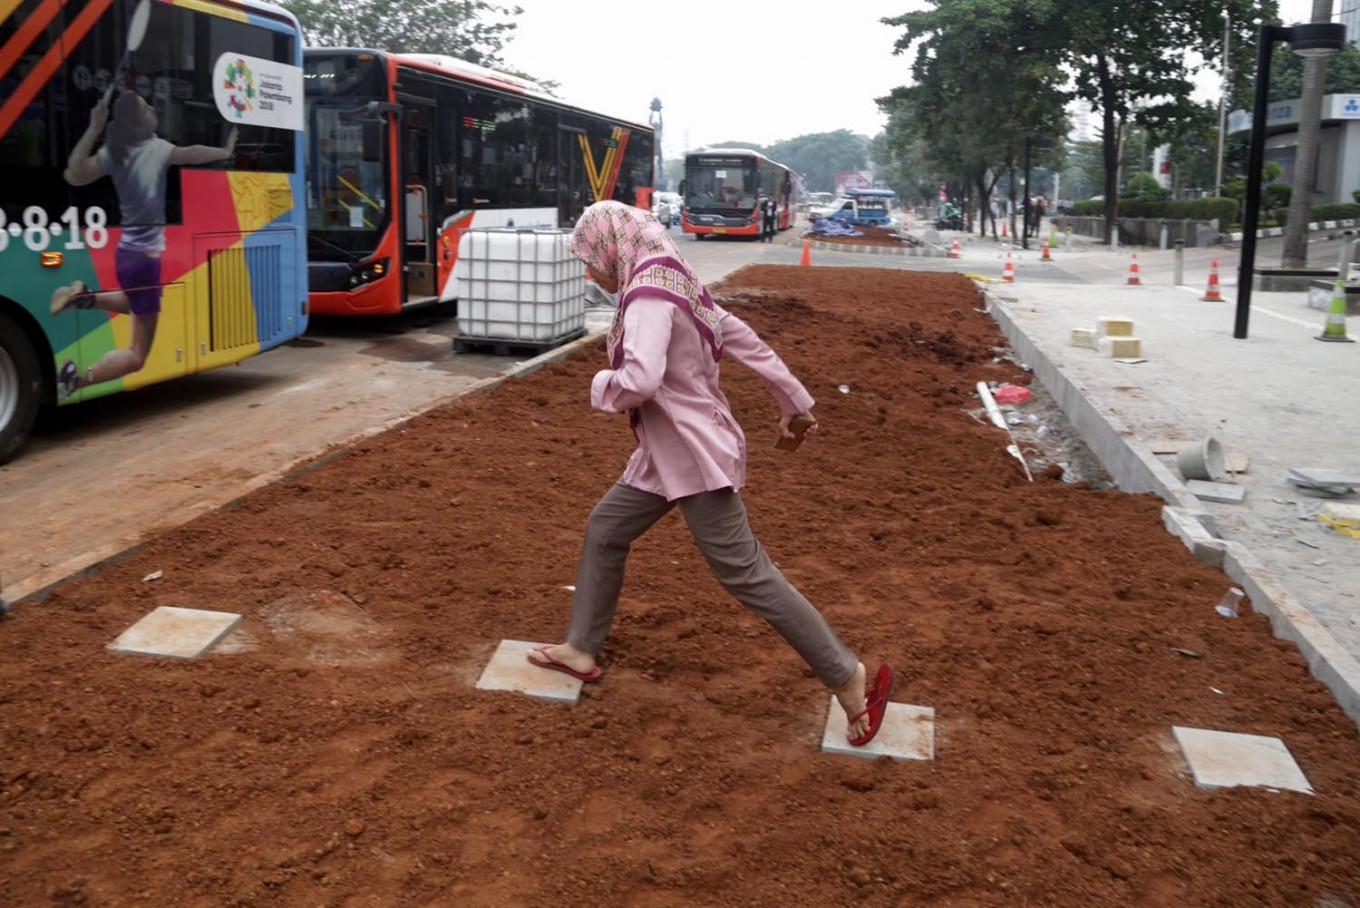 A commuter hops across a footpath to get to a bus in Sudirman, Central Jakarta, on Tuesday, July 24, 2018. In the city administration's new sidewalk design, a 2.5-meter green space will separate the sidewalk and bus stops. JP/Wendra Ajistyatama